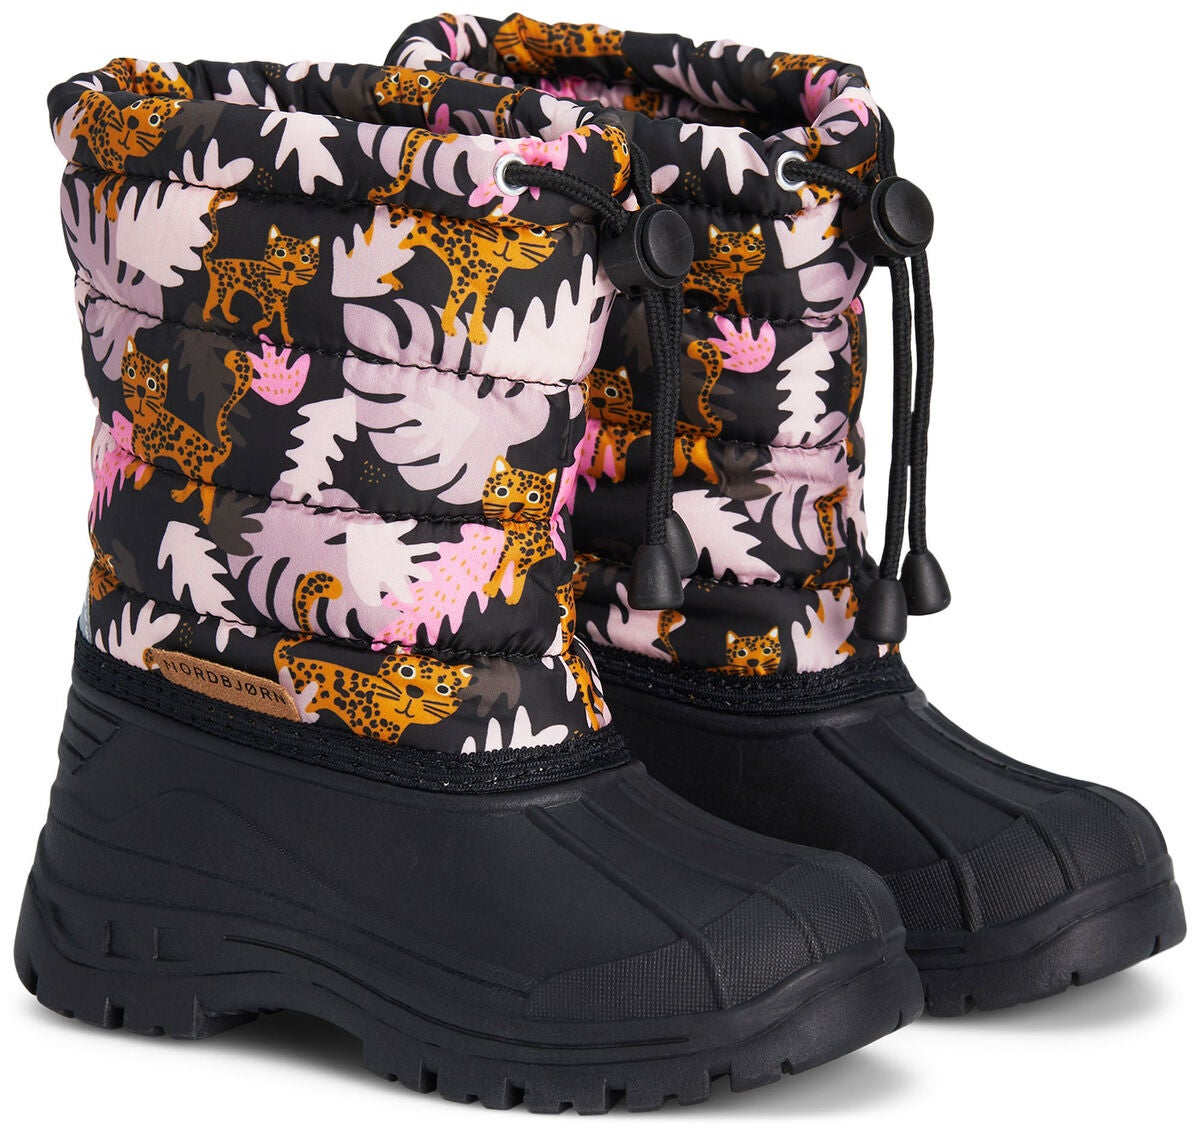 Nordbjørn Frosty Winterstiefel, Djungle Pink